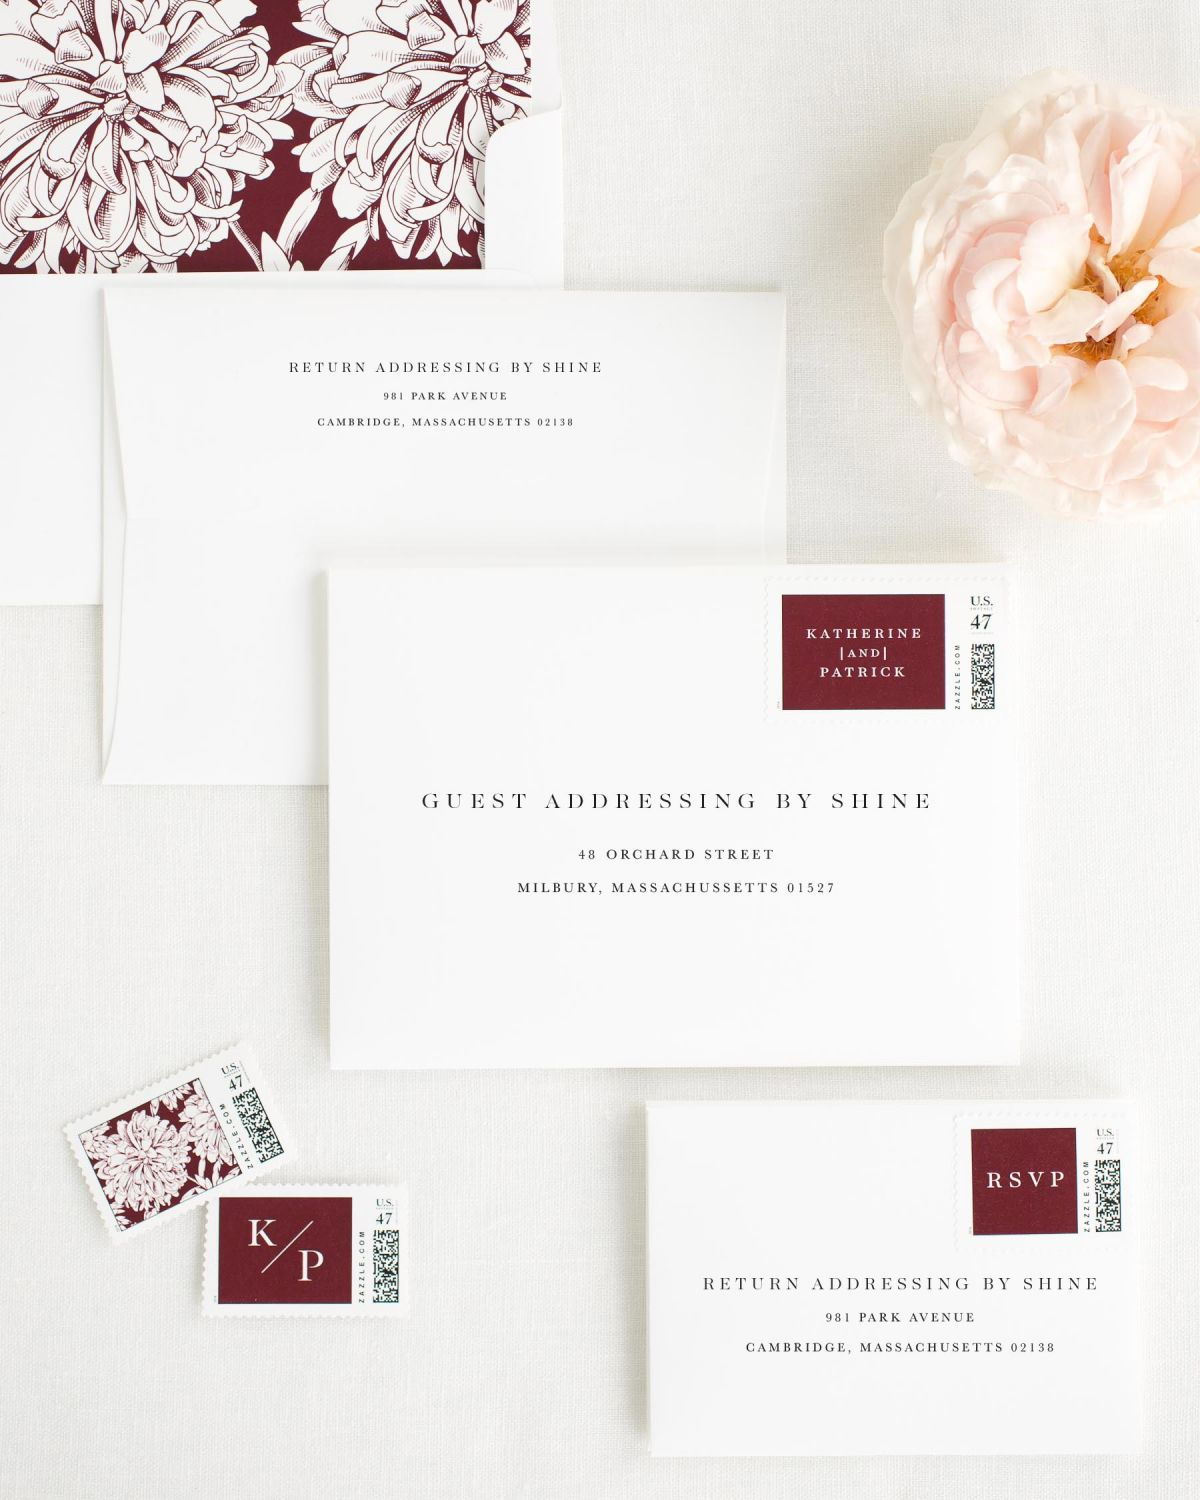 Wedding Invitation Envelopes with Cabernet Personalized Postage and Dahlias Liner